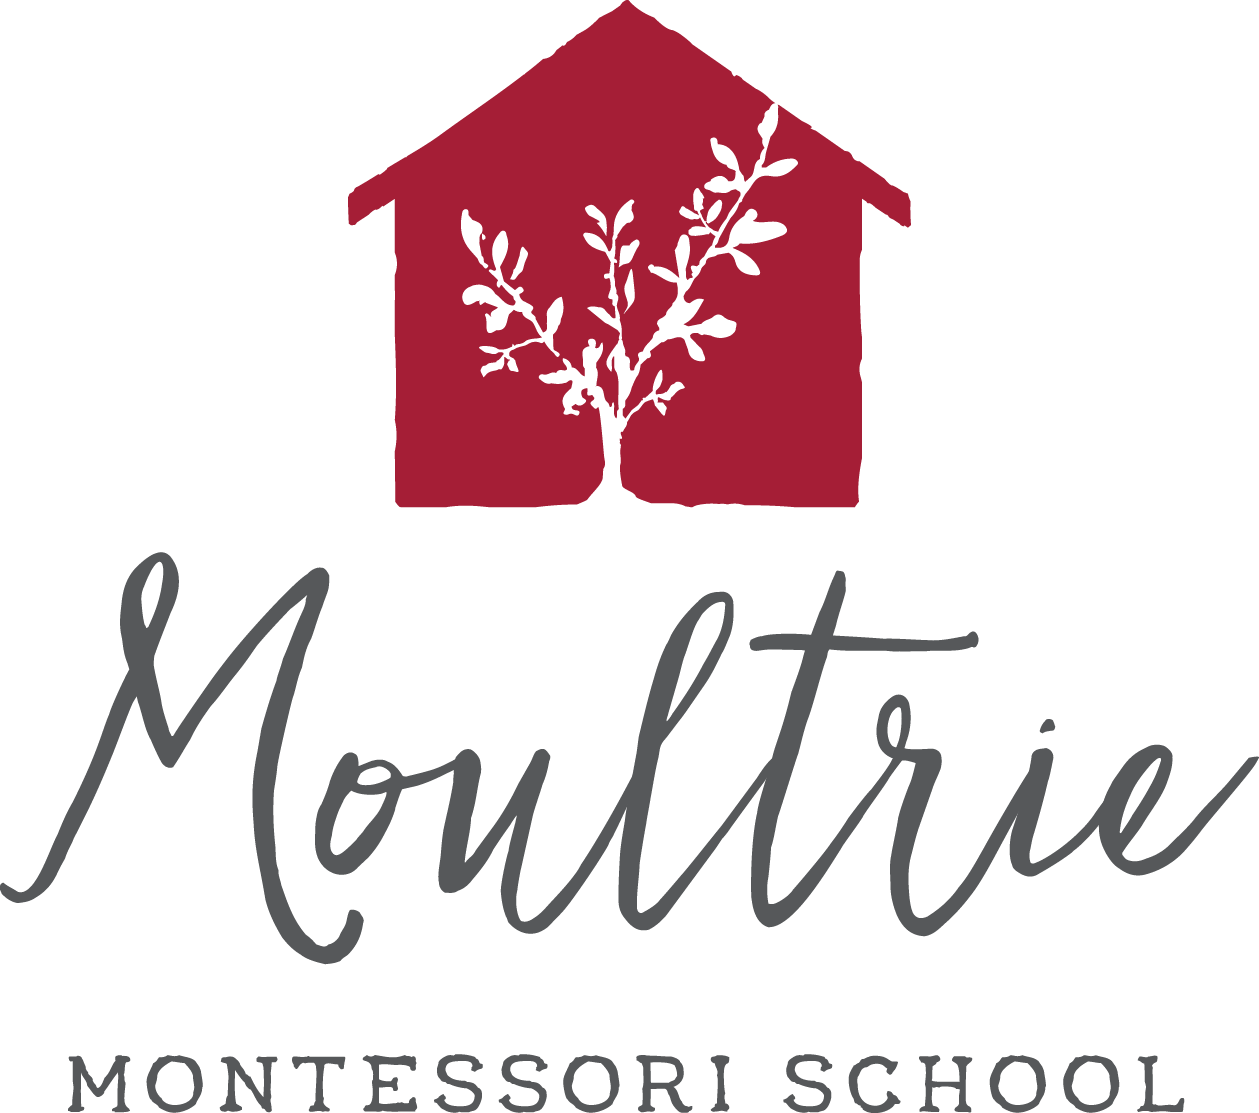 Moultrie Montessori School | Where Children Grow